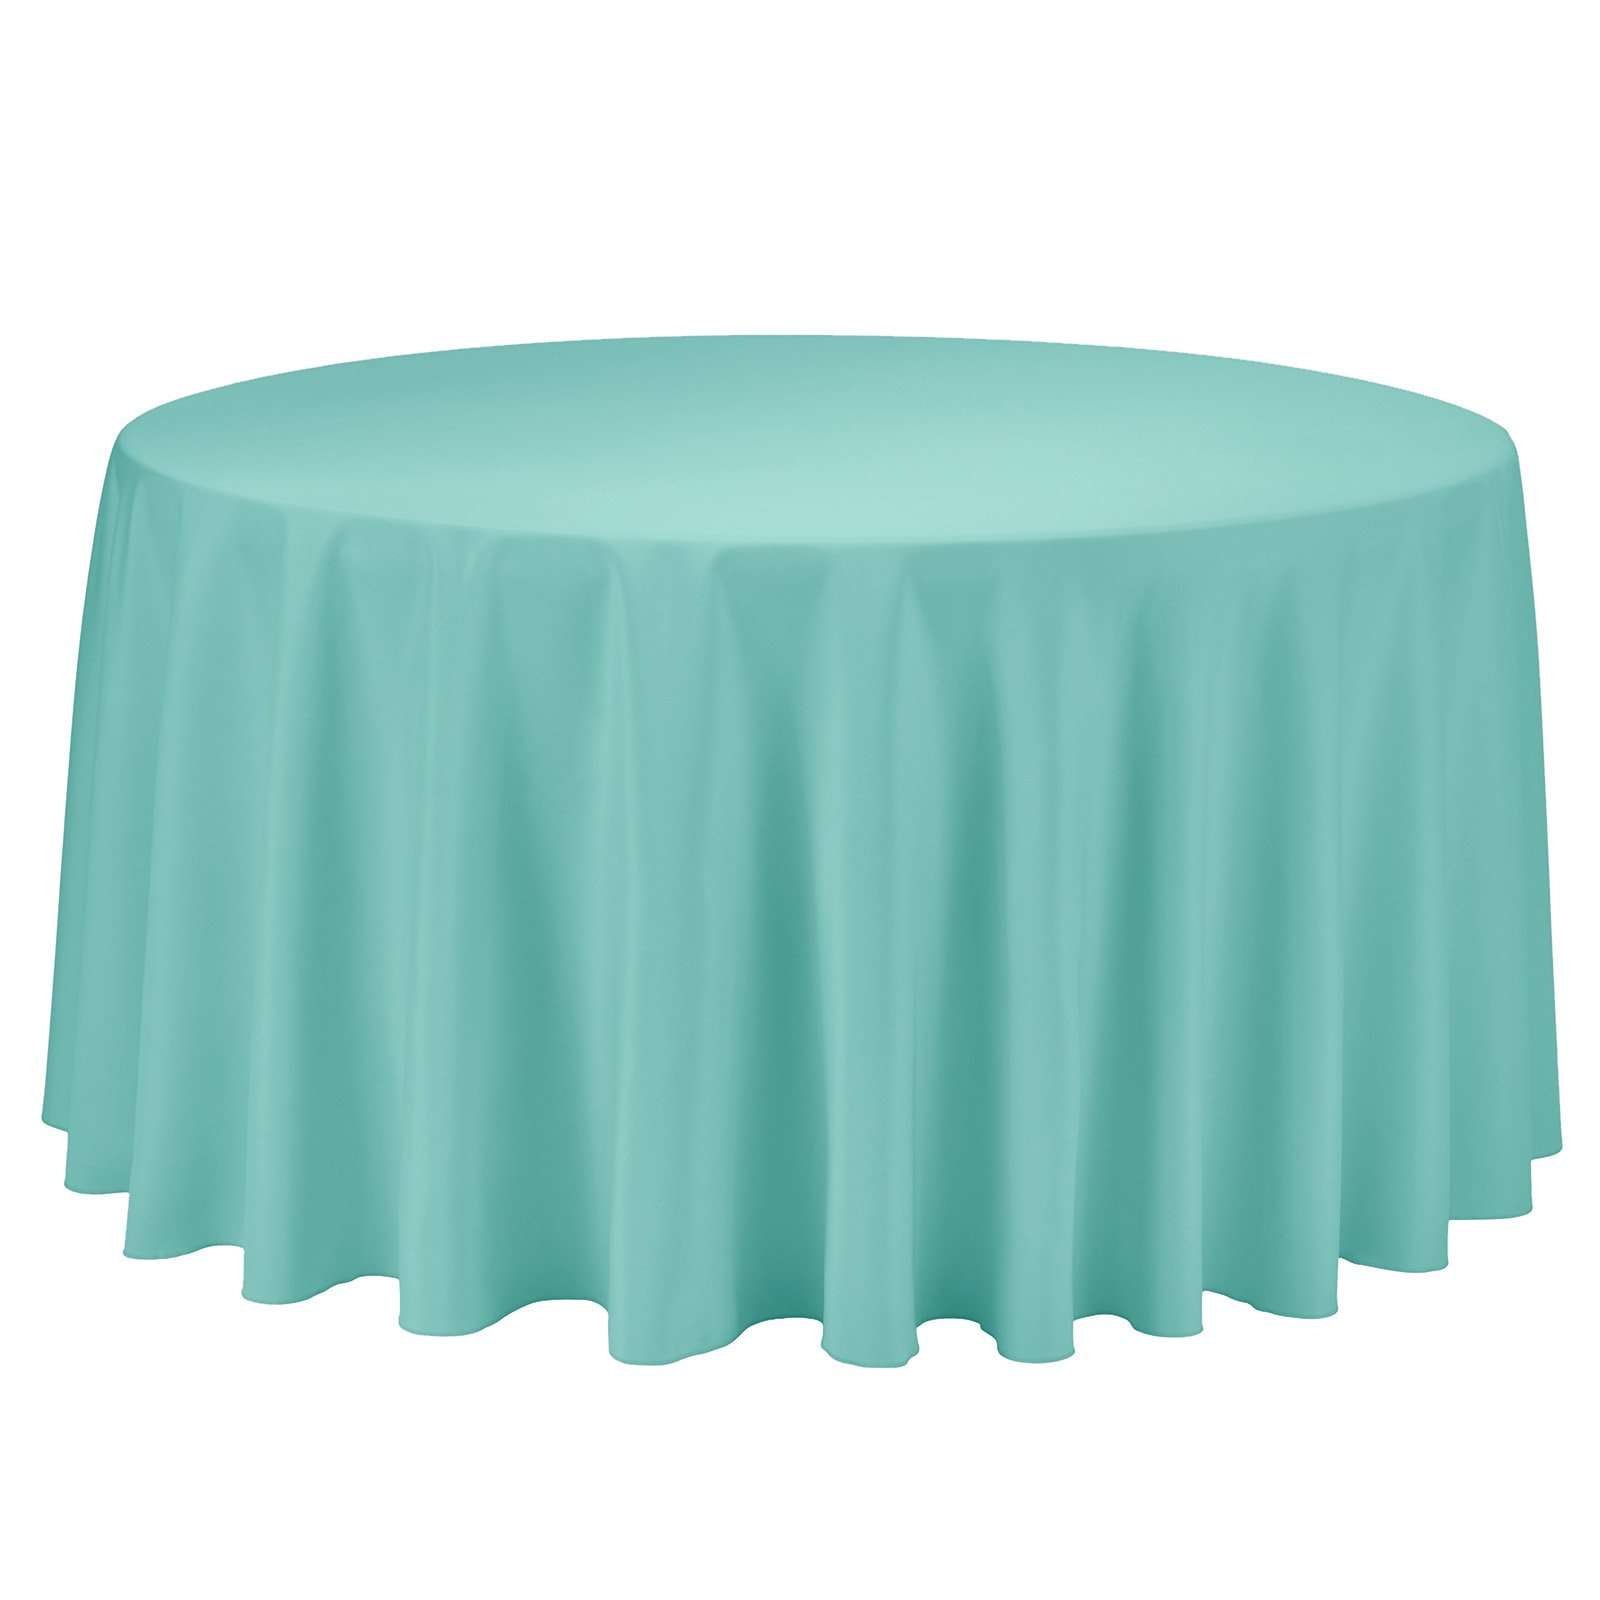 Remedios Round Tablecloth Solid Color Polyester Table Cloth for Bridal Shower Wedding Table – Wrinkle Free Dinner Tablecloth for Restaurant Party Banquet (Turquoise, 108 inch)